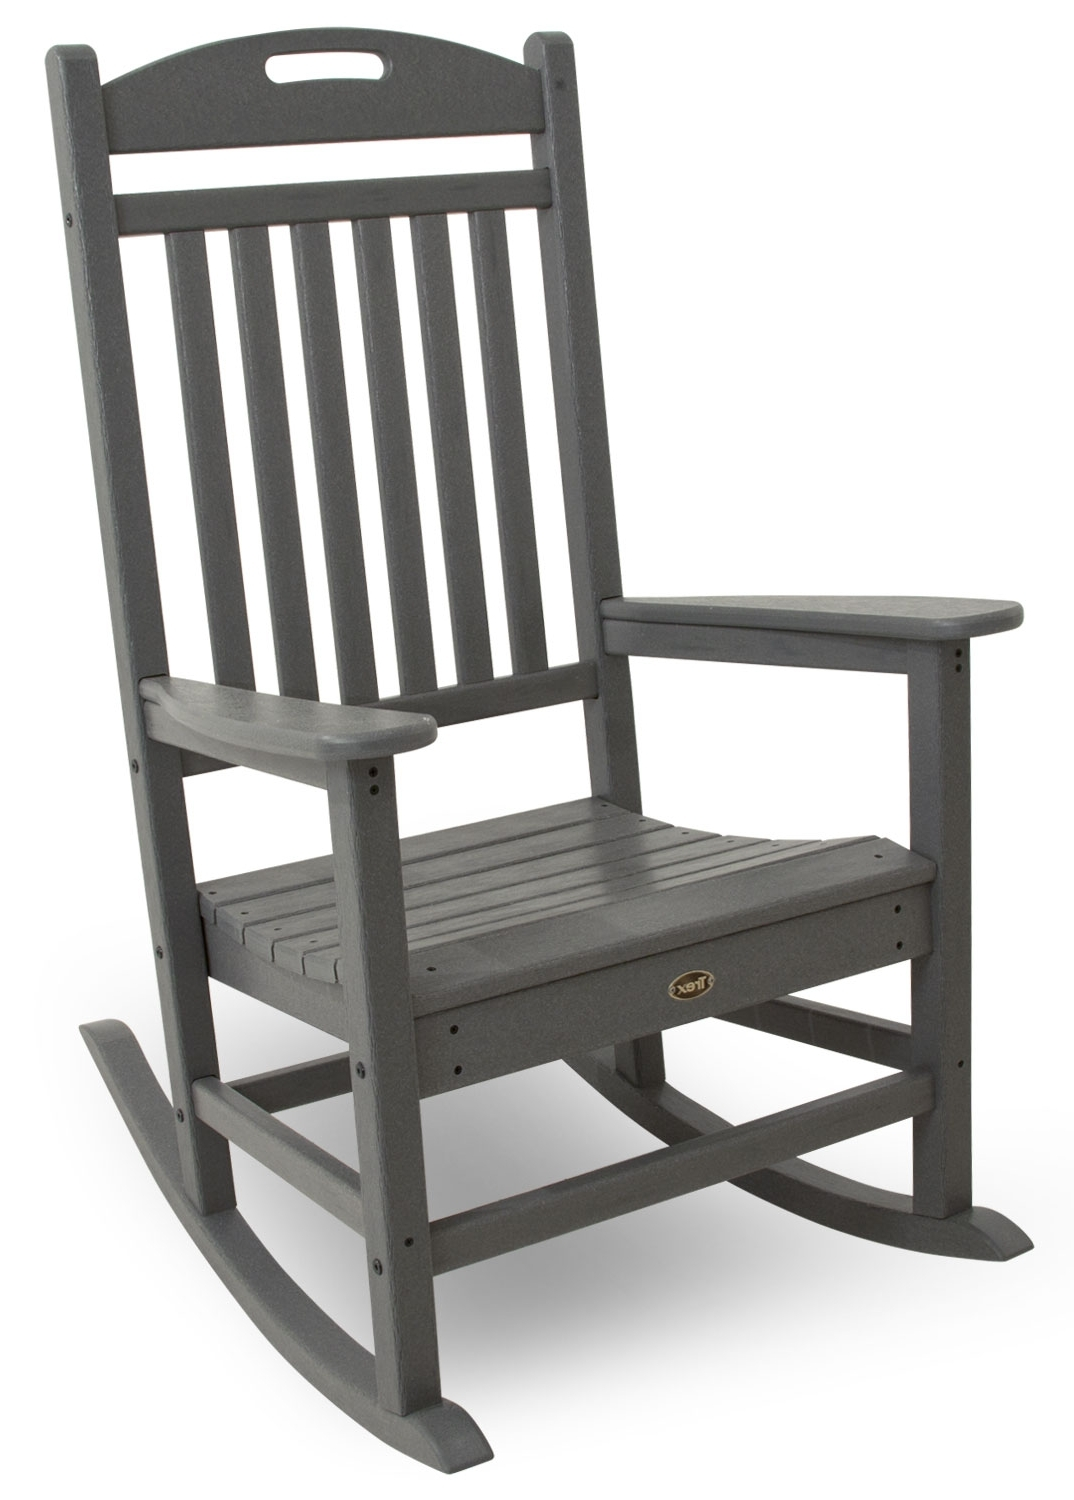 Livingroom : Shop Adams Mfg Corp Stackable Resin Rocking Chair At Pertaining To Most Recently Released Stackable Patio Rocking Chairs (View 2 of 15)